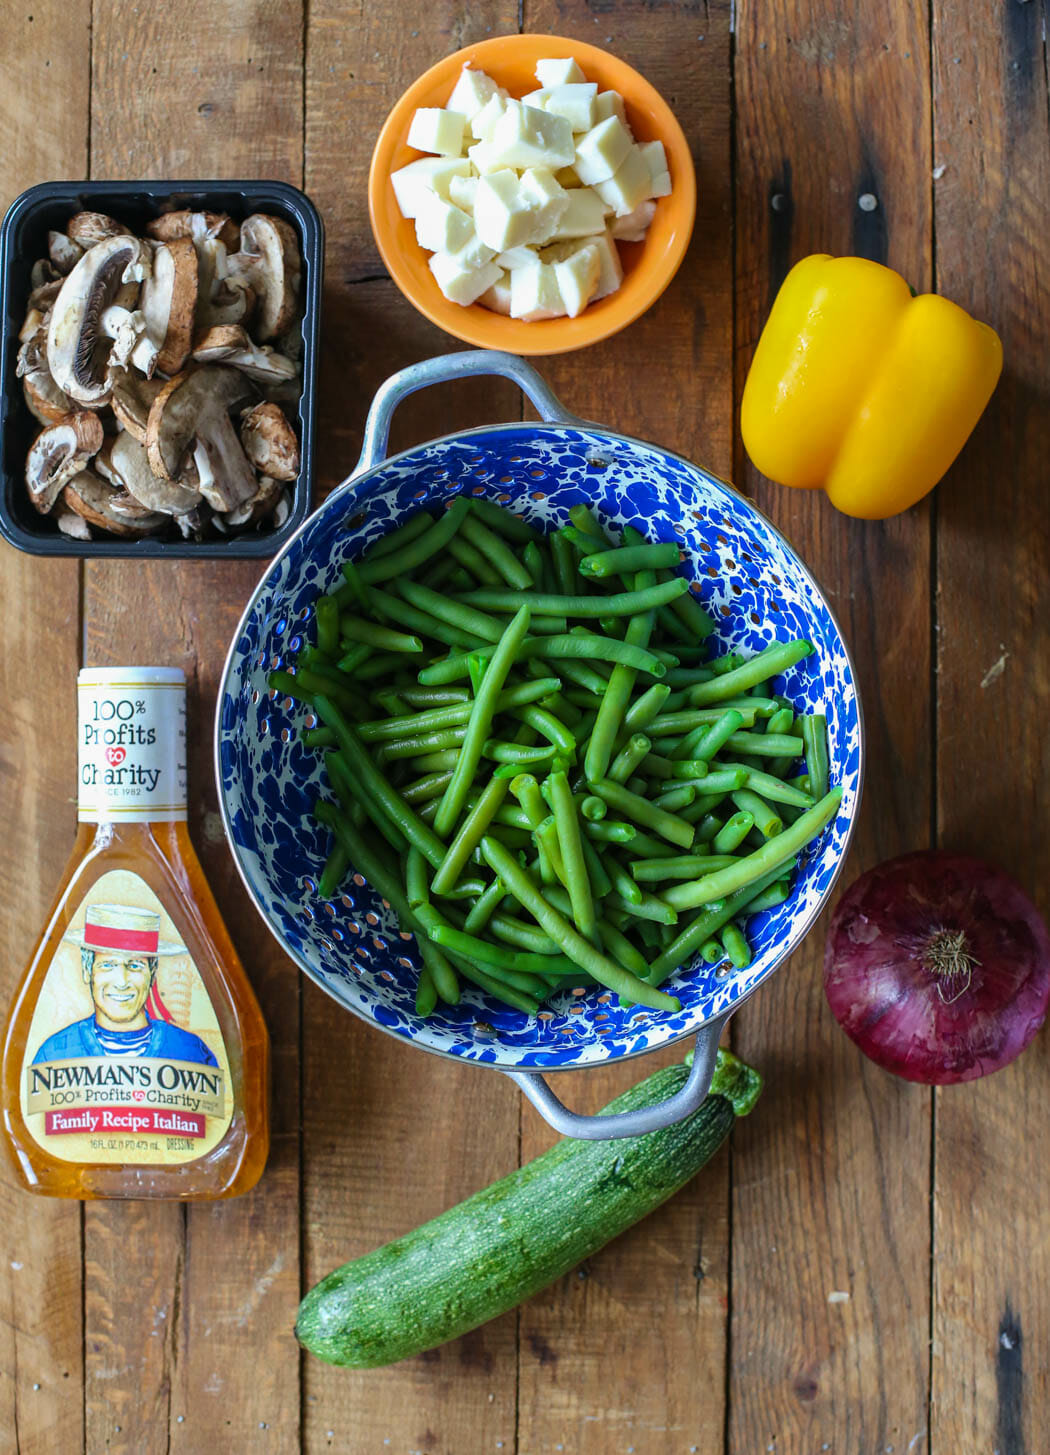 ingredients for marinated green bean salad from Our Best Bites